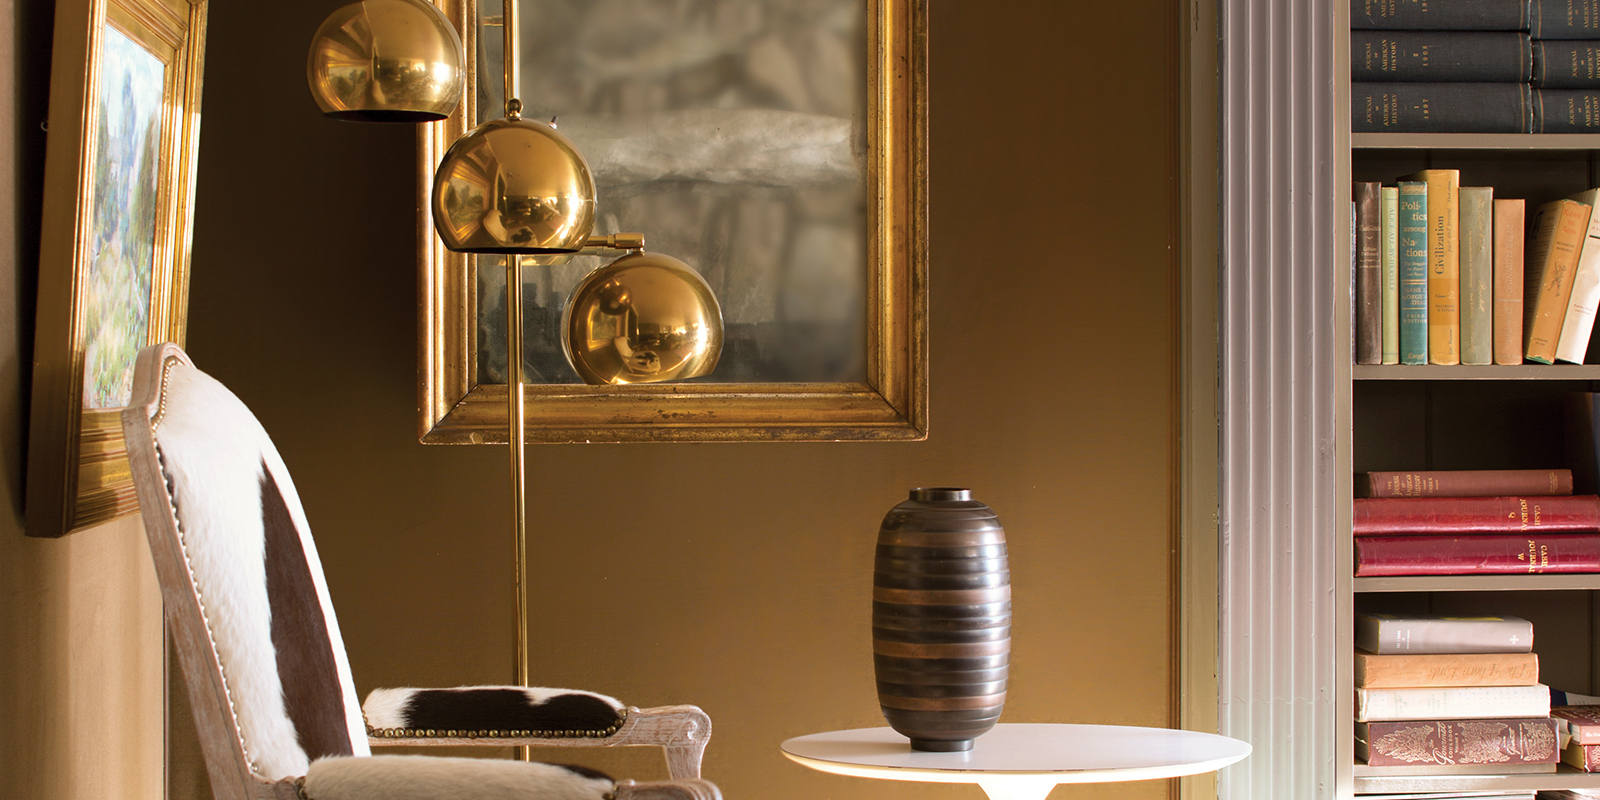 Chair Profile with Brass Lamp